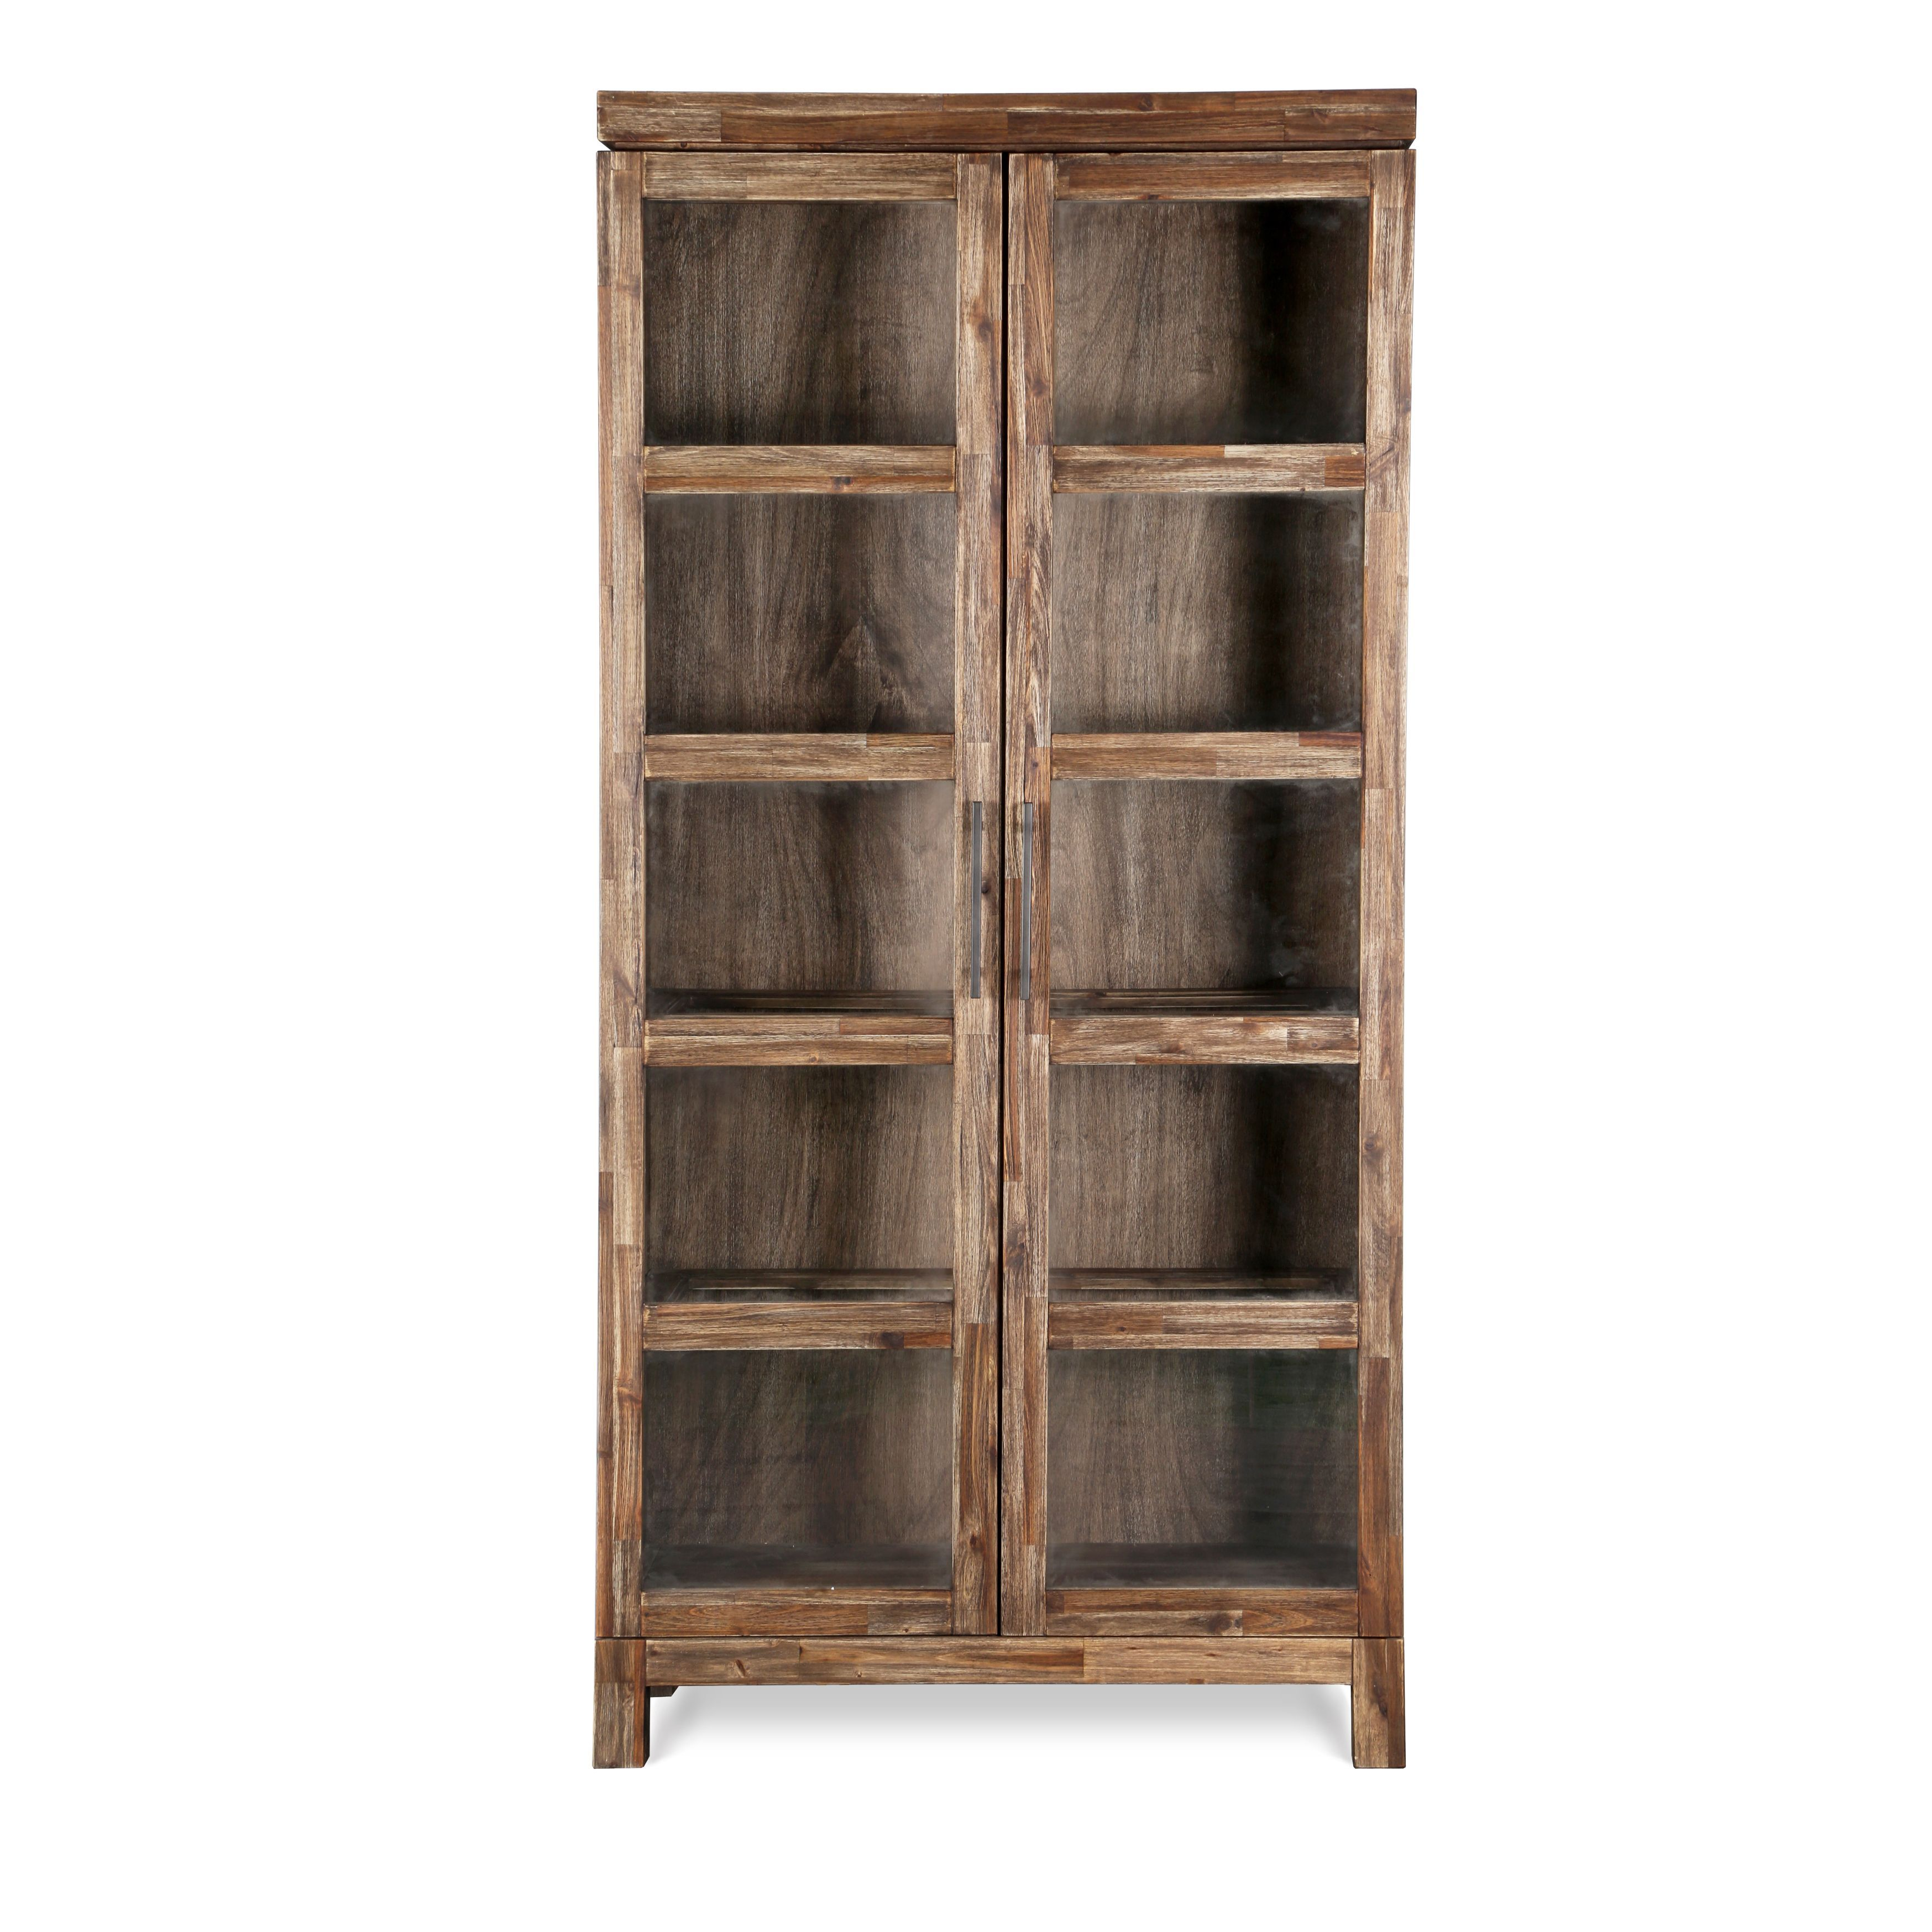 doors wood bookcases img bookcase brown products drawers storage with large solutions office wooden